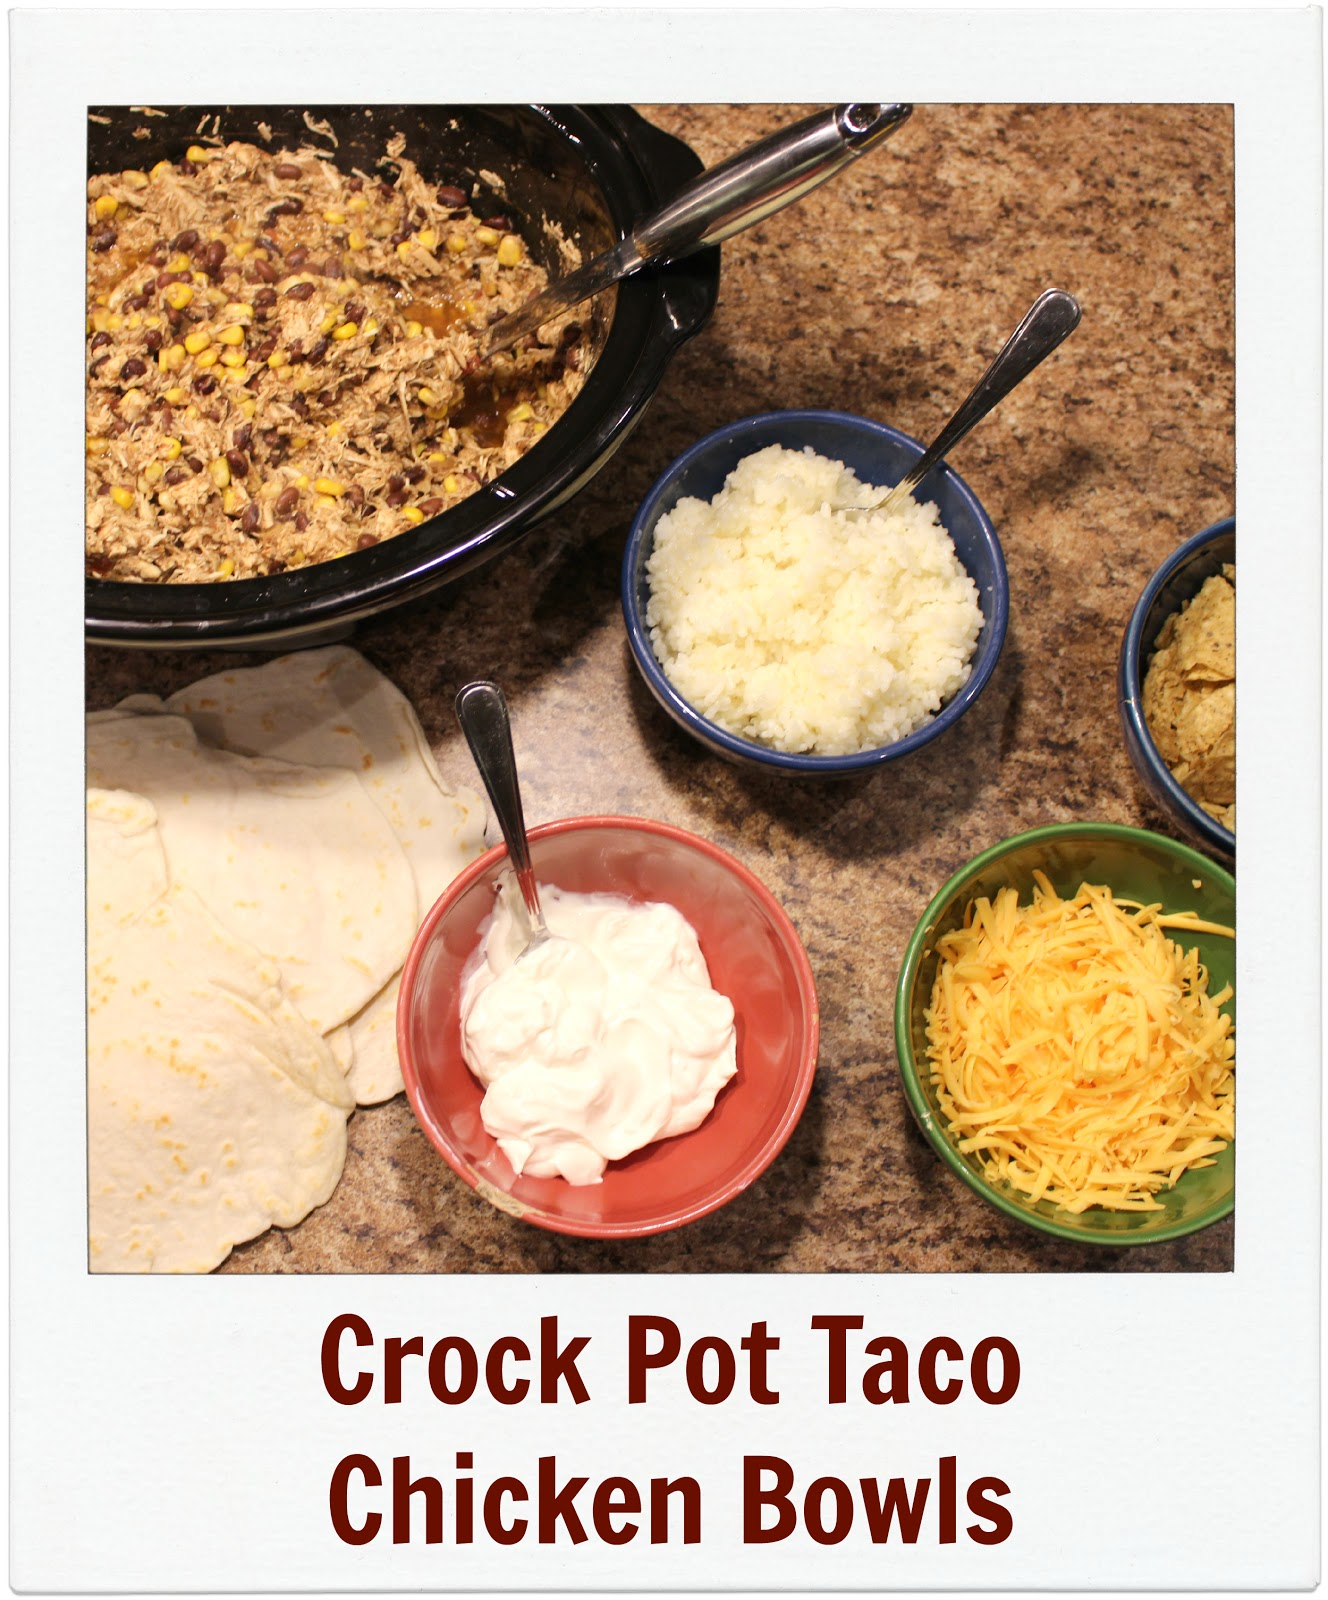 Crock Pot Taco Chicken Bowls. Recipe by Jenn's Random Scraps